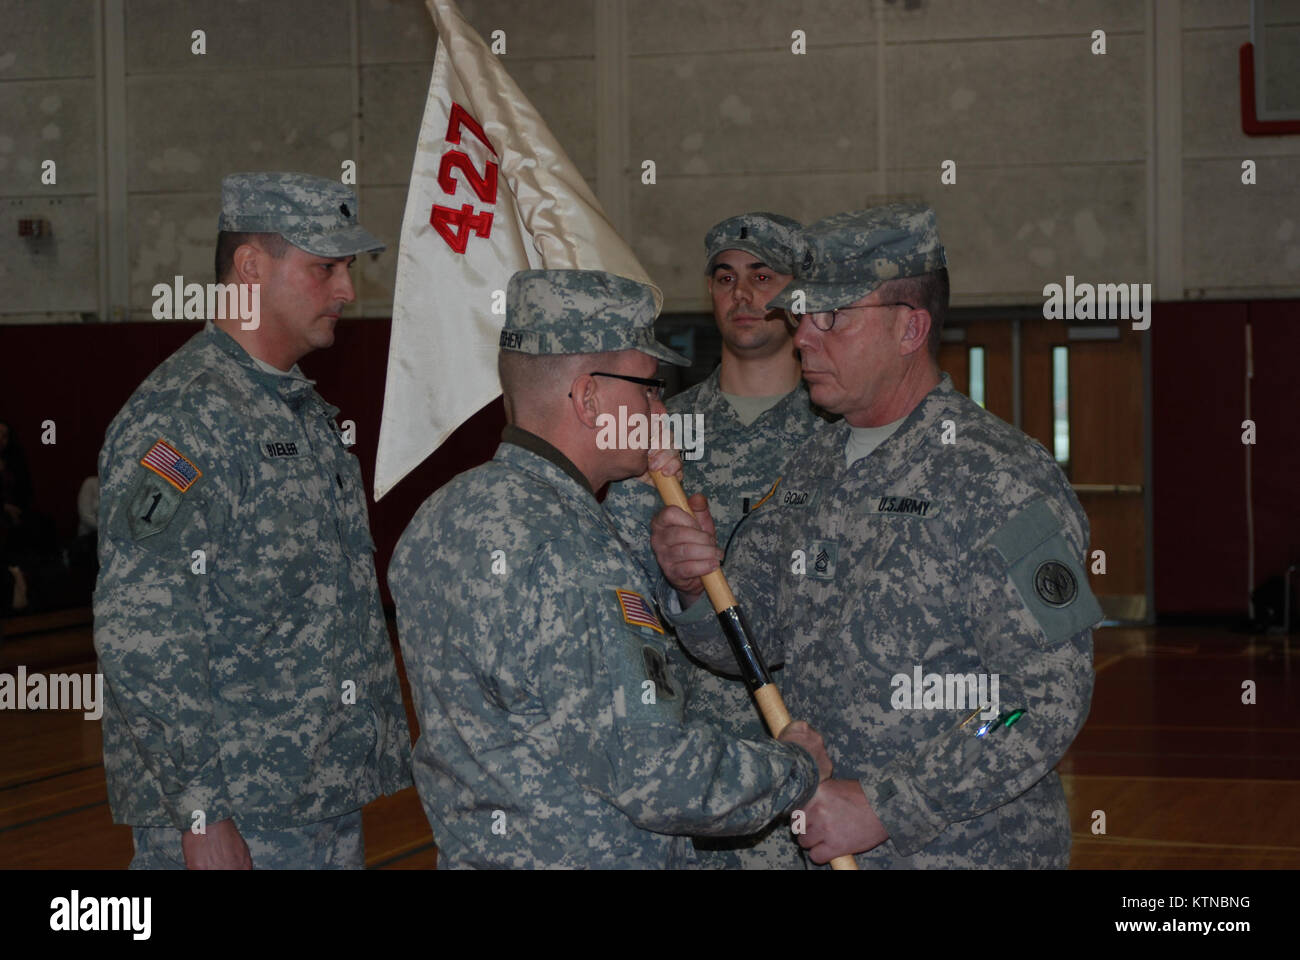 Attirant Steven Kitchen Transfers The Guidon Of Company E 427th Brigade Support  Battalion To Lt. Mark Colloton During Change Of Command Ceremonies On  Sunday, Jan.